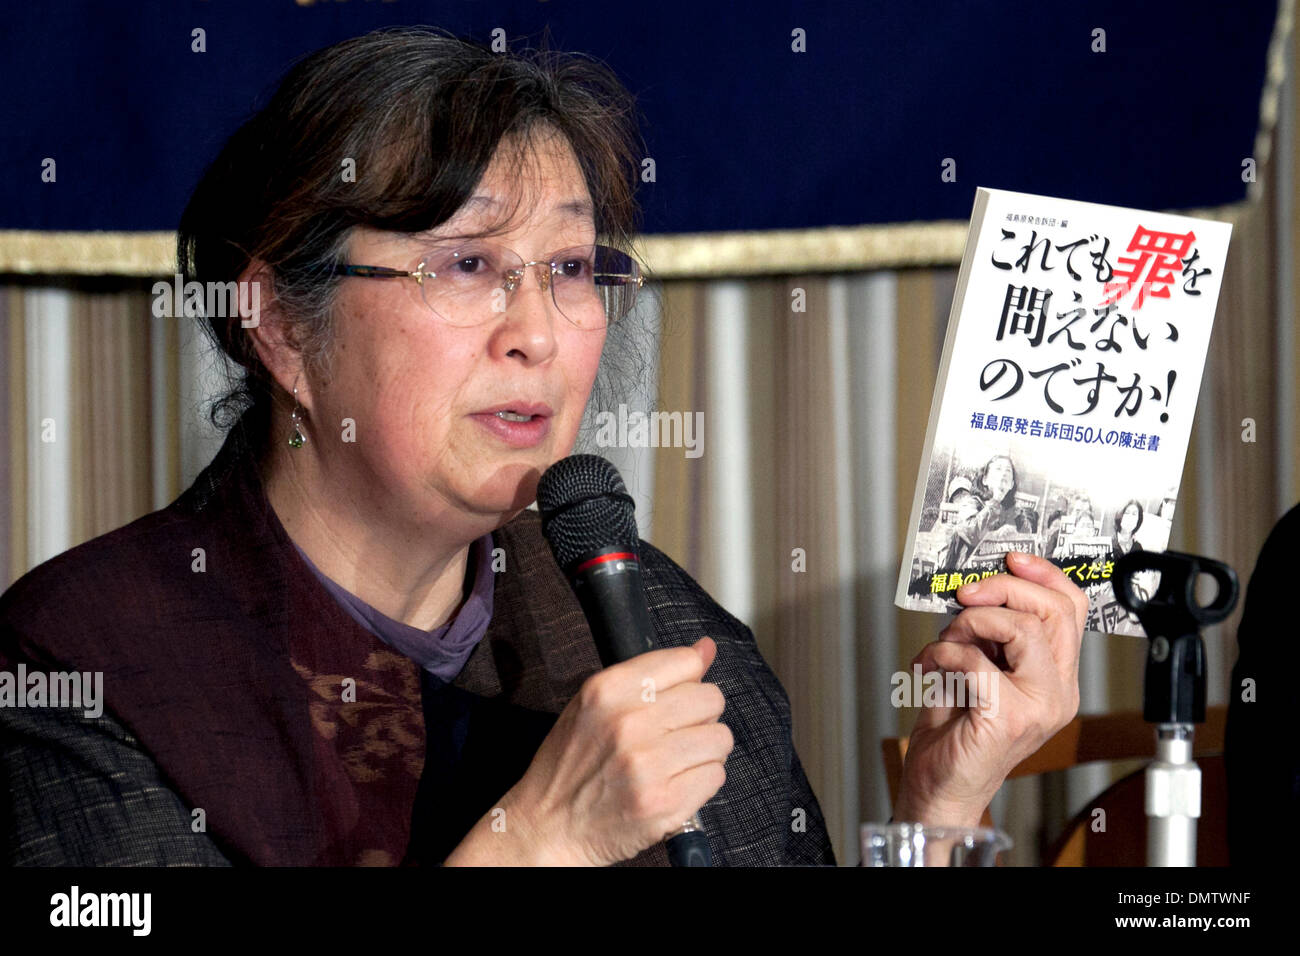 Tokyo, Japan. 17th December 2013. - Representative of Fukushima Disaster Plaintiffs, Ruiko Mutoh shows the book Do You Still Say 'No Criminals Changes'! Statements by 50 Members of The Complainants for the Criminal Prosecution of the Fukushima Nuclear Disaster at the Foreign Correspondents' Club of Japan (FCCJ). Mutoh speaks about the legal process of the suit against 32 former, current executives of TEPCO and the corporation. Credit:  Aflo Co. Ltd./Alamy Live News - Stock Image